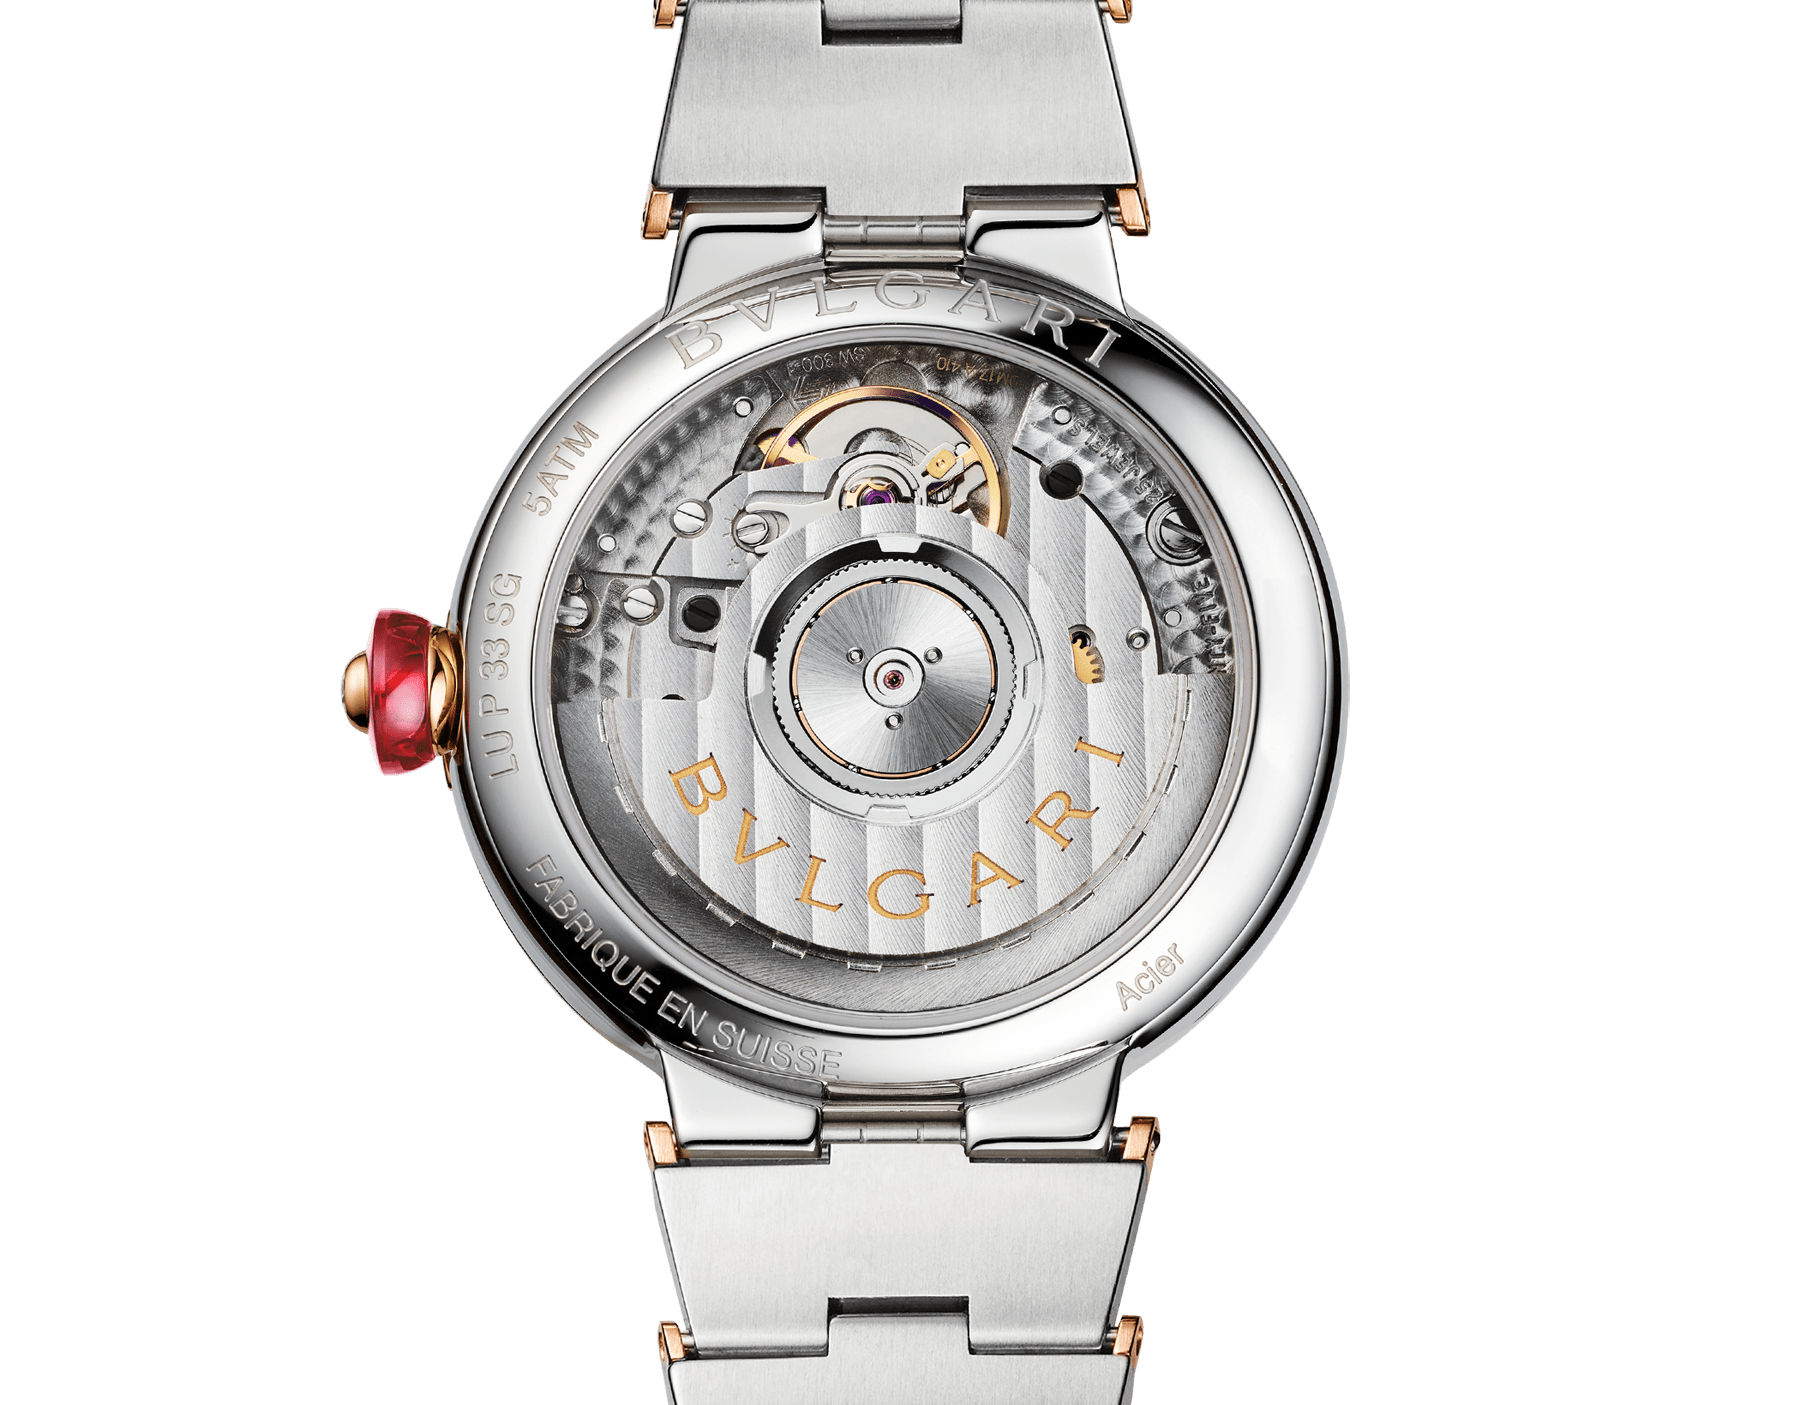 LVCEA watch with stainless steel case, 18 kt rose gold bezel set with diamonds, grey lacquered dial, diamond indexes, stainless steel and 18 kt rose gold bracelet 103029 image 4